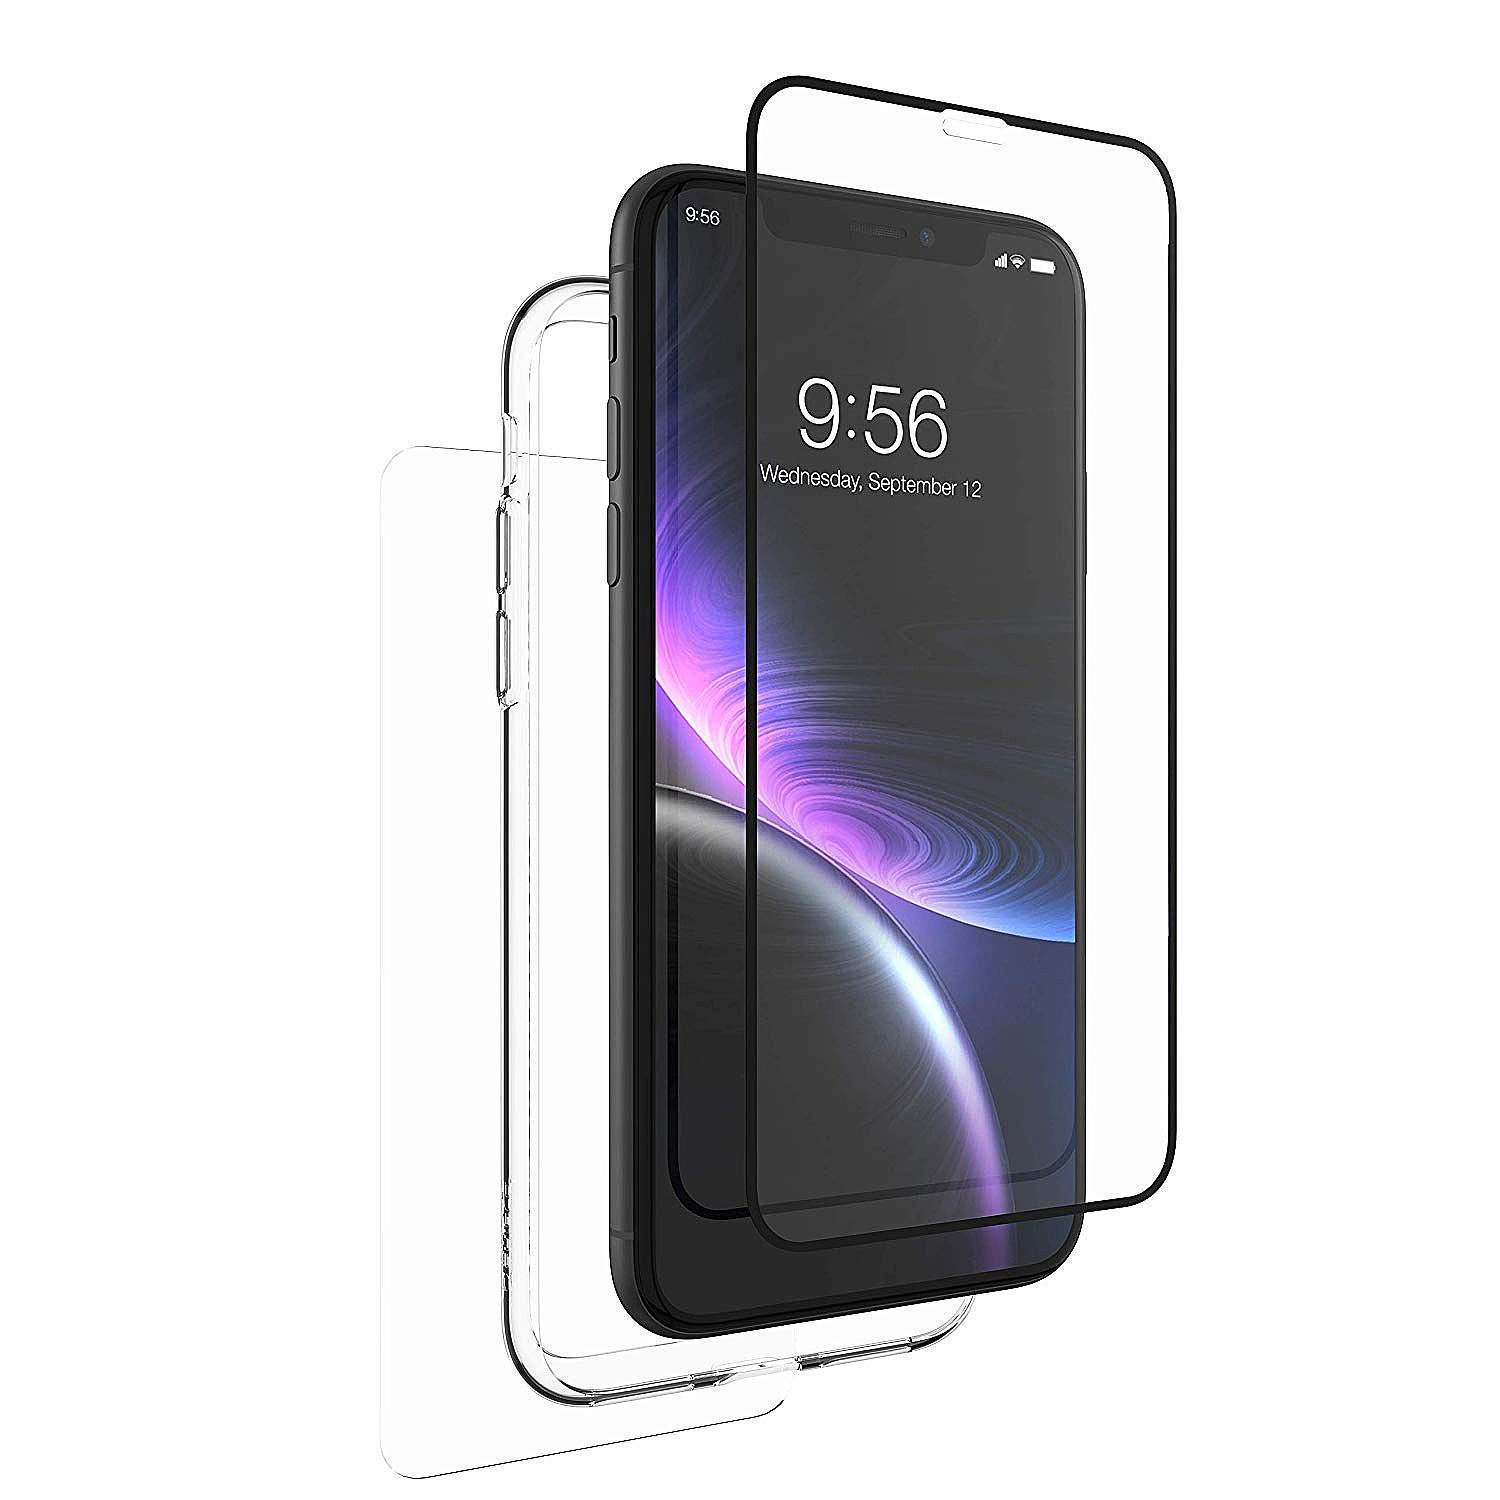 100% authentic 9a17d 33dfb ZAGG InvisibleShield Glass+ 360 - Front + Back Screen Protection ...